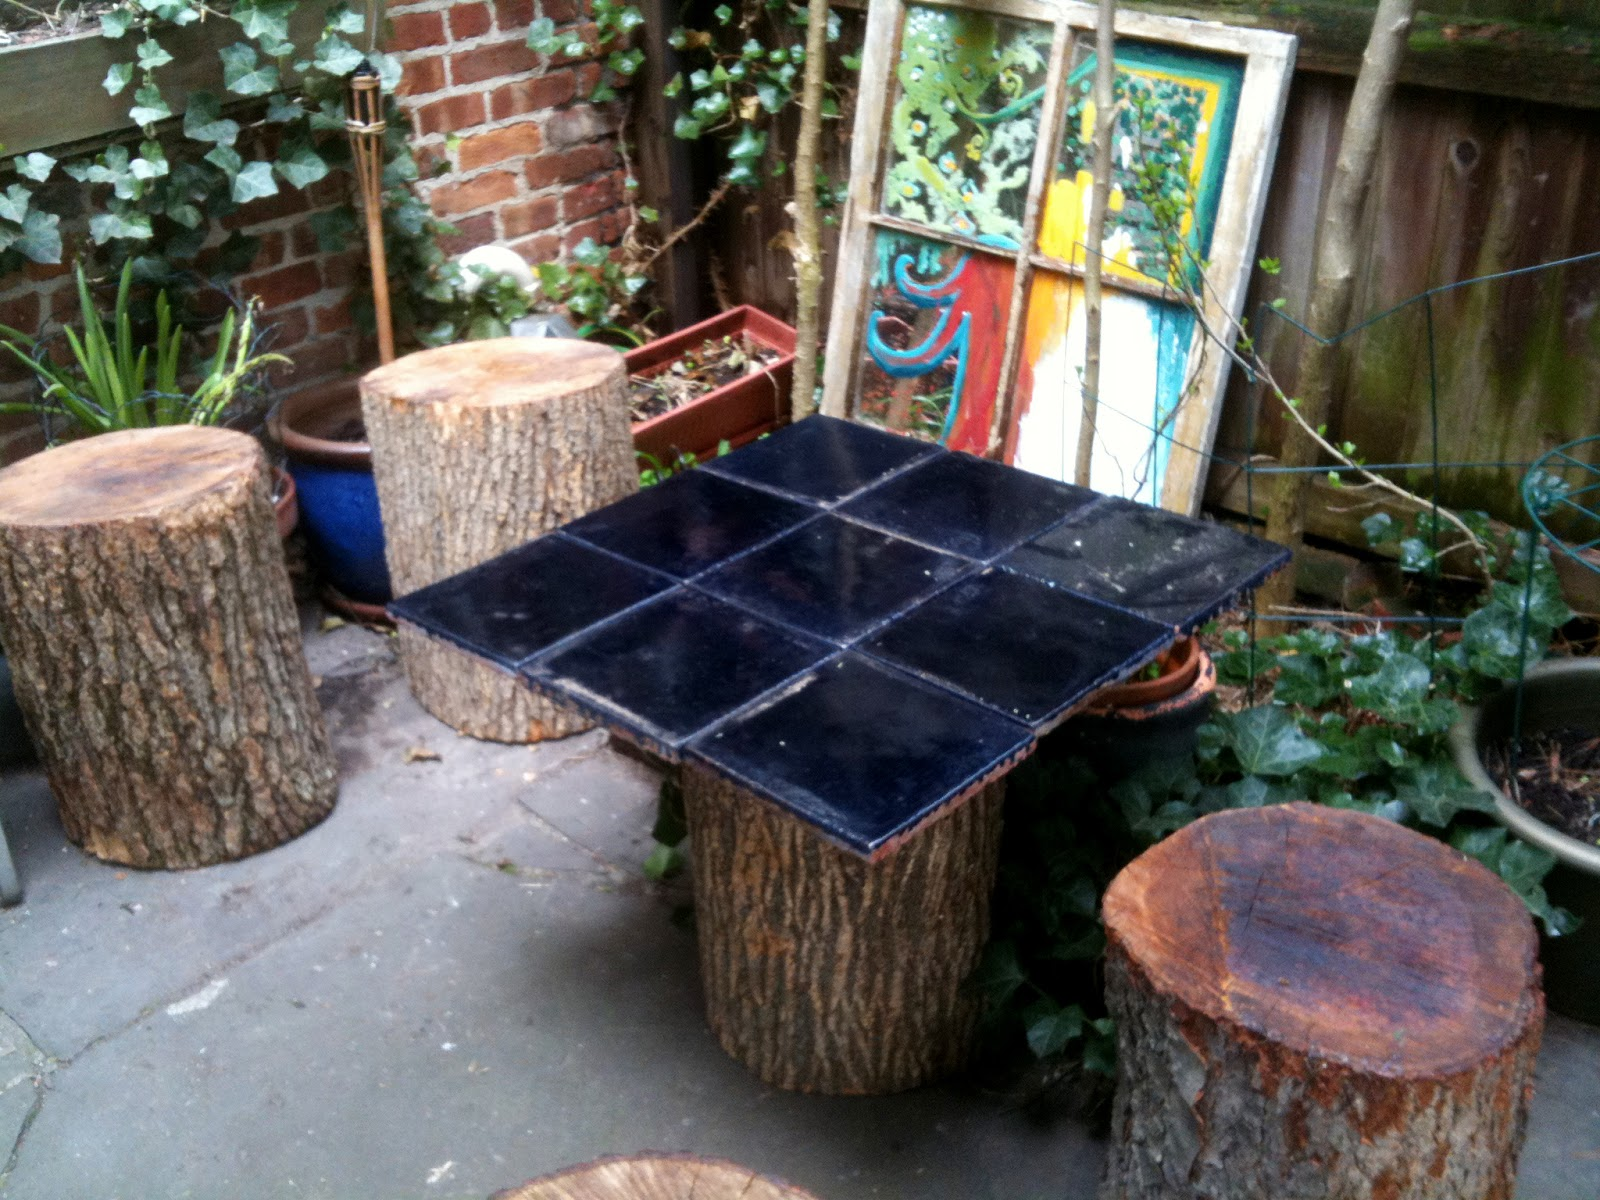 Bexcetera for Upcycled tree stumps